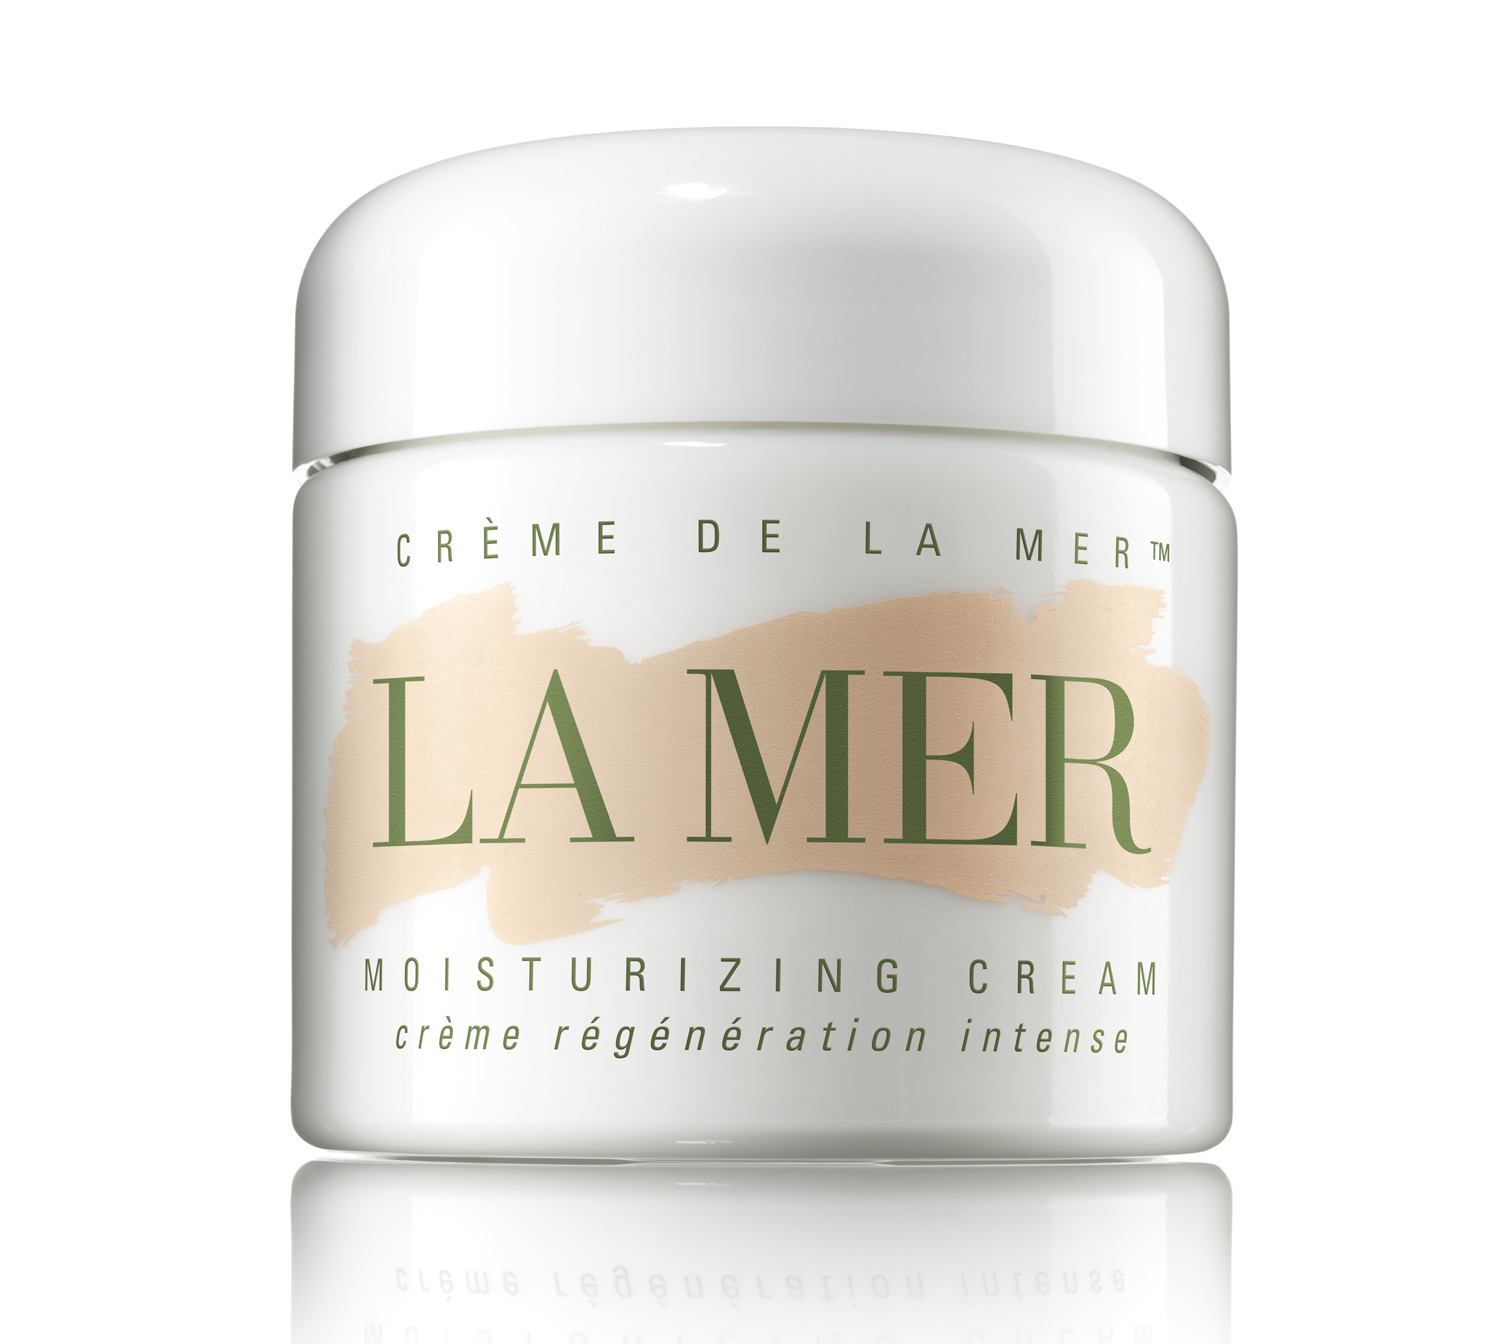 Creme de la mer reviews